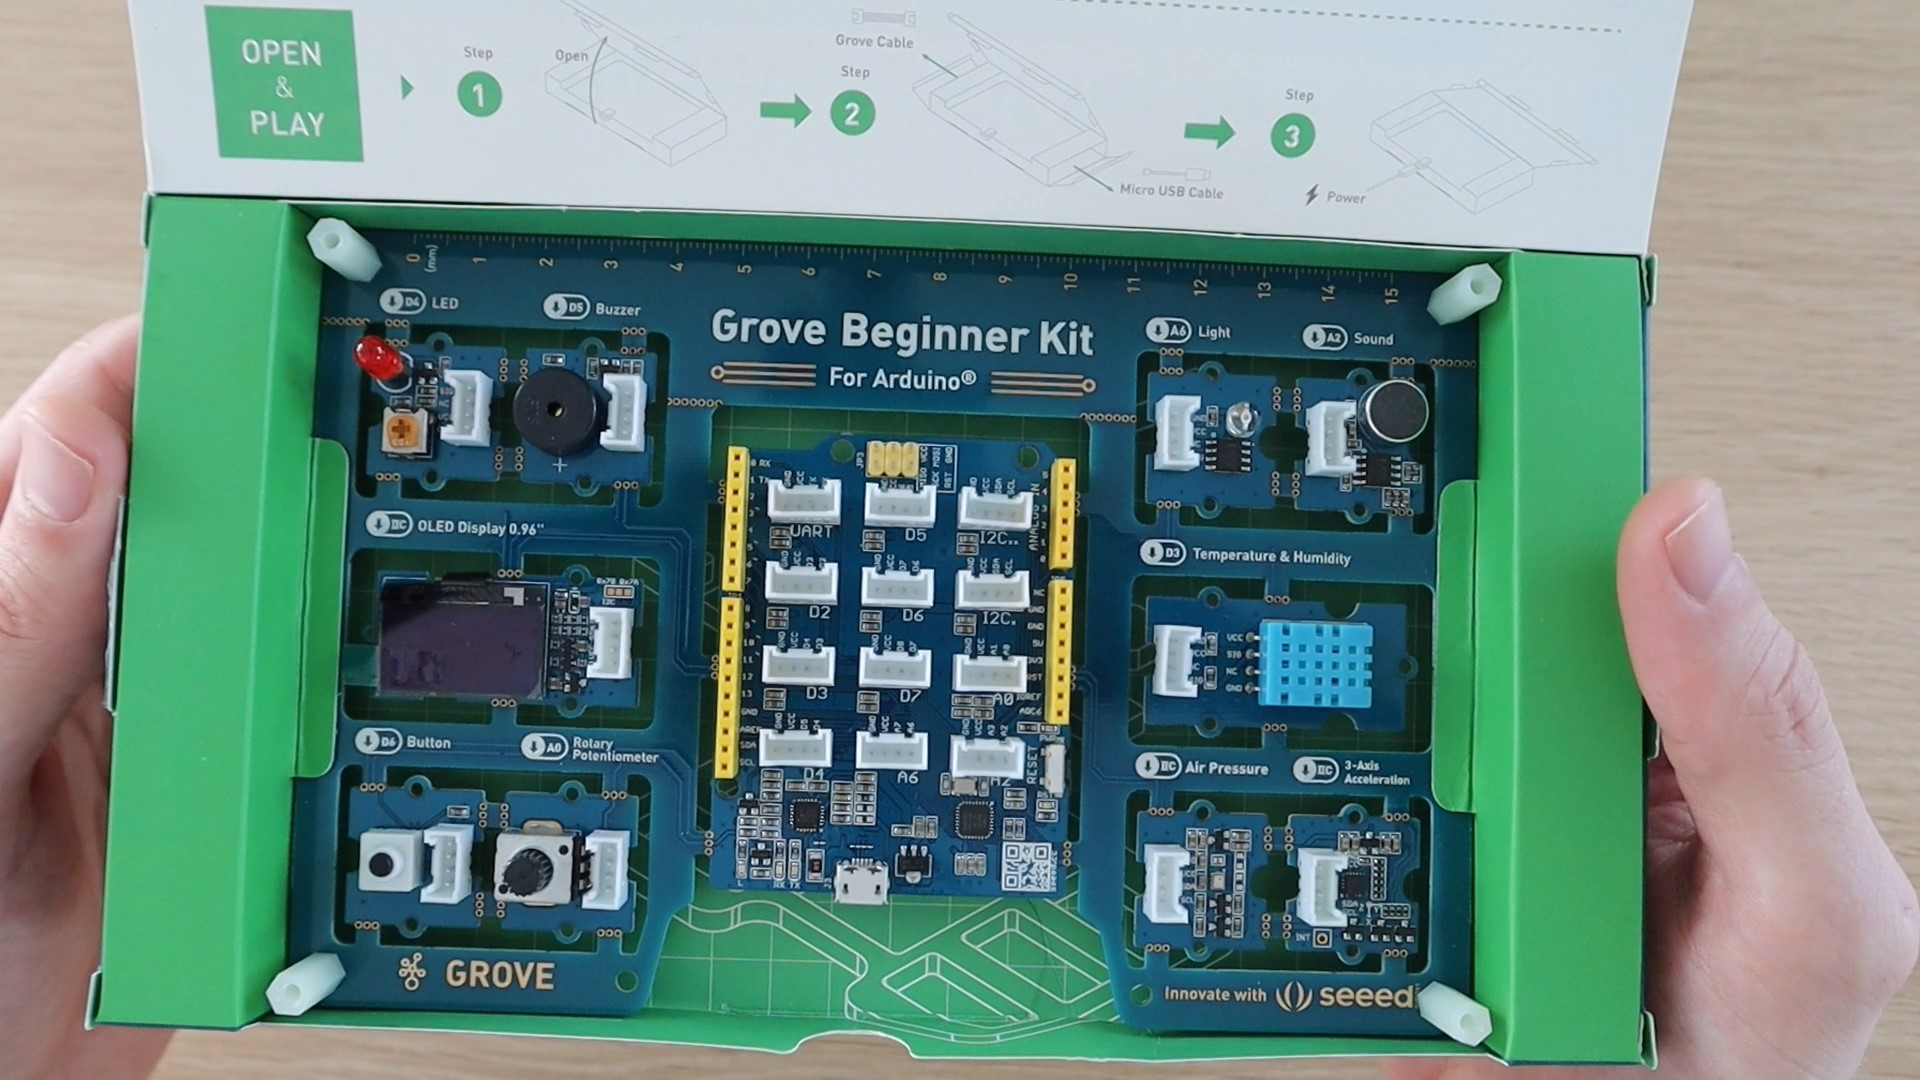 Grove Beginner Kit Inside